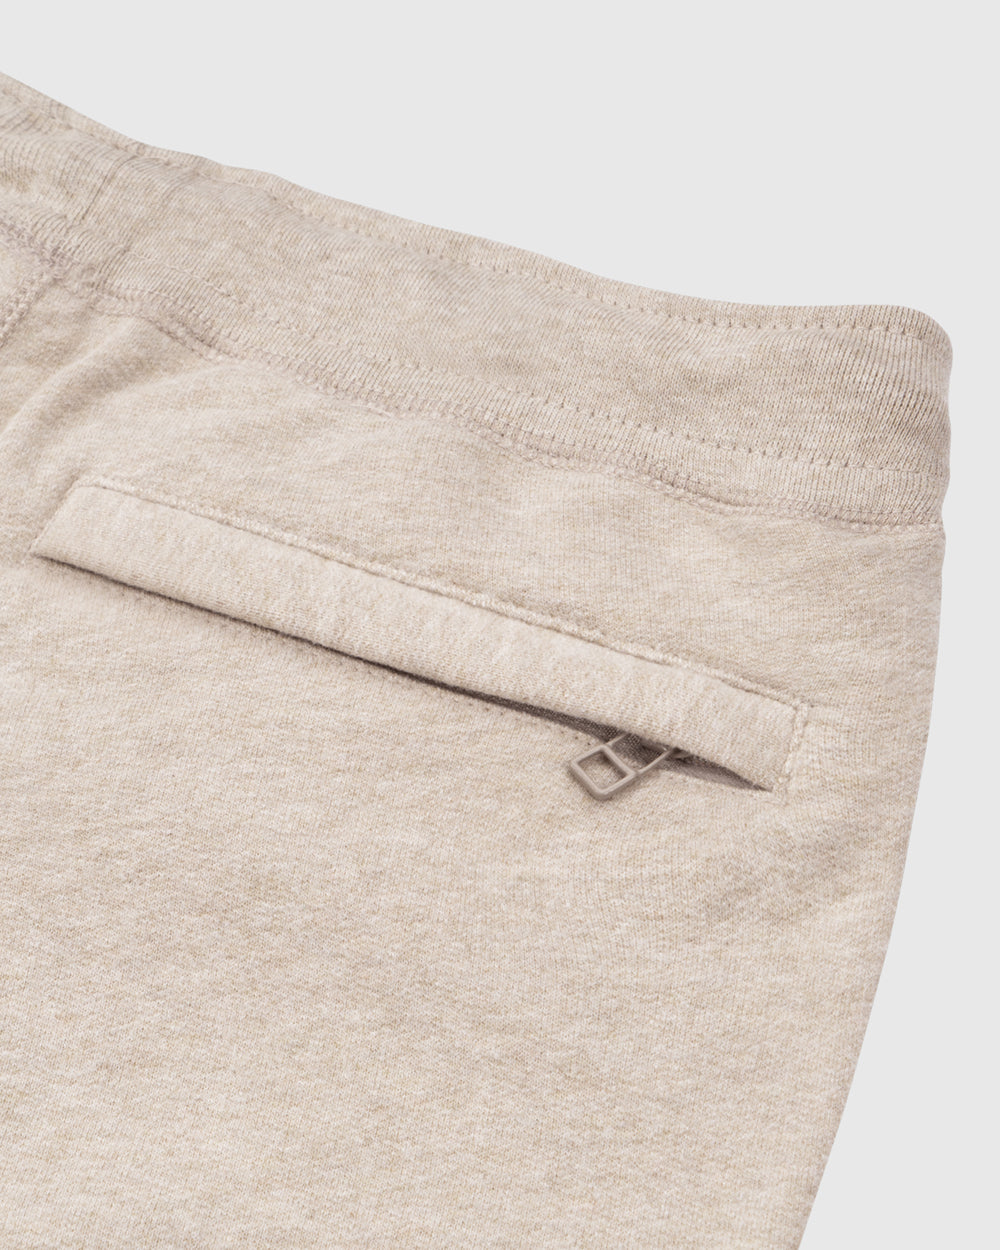 OVO FRENCH TERRY SWEATPANT - HEATHER OATMEAL